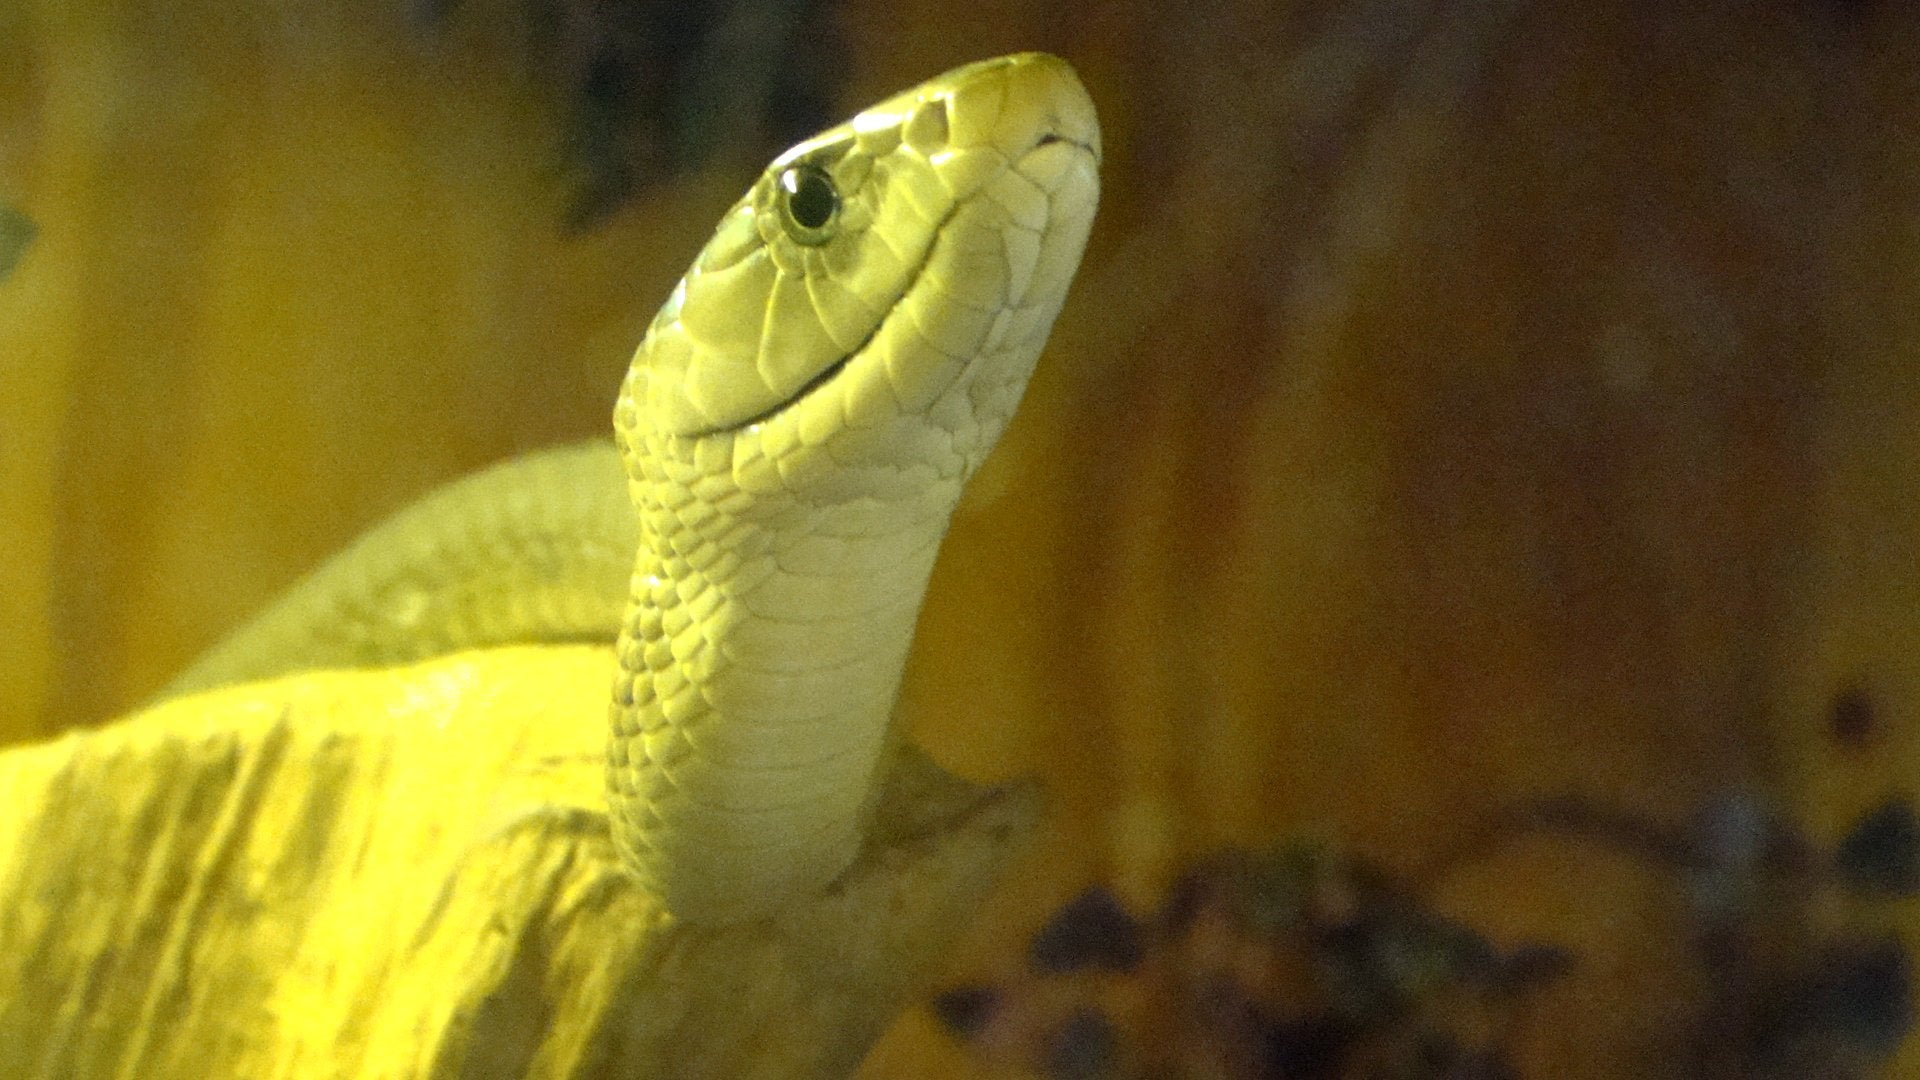 Snake Venom Might Actually Be a Better Painkiller Than Morphine